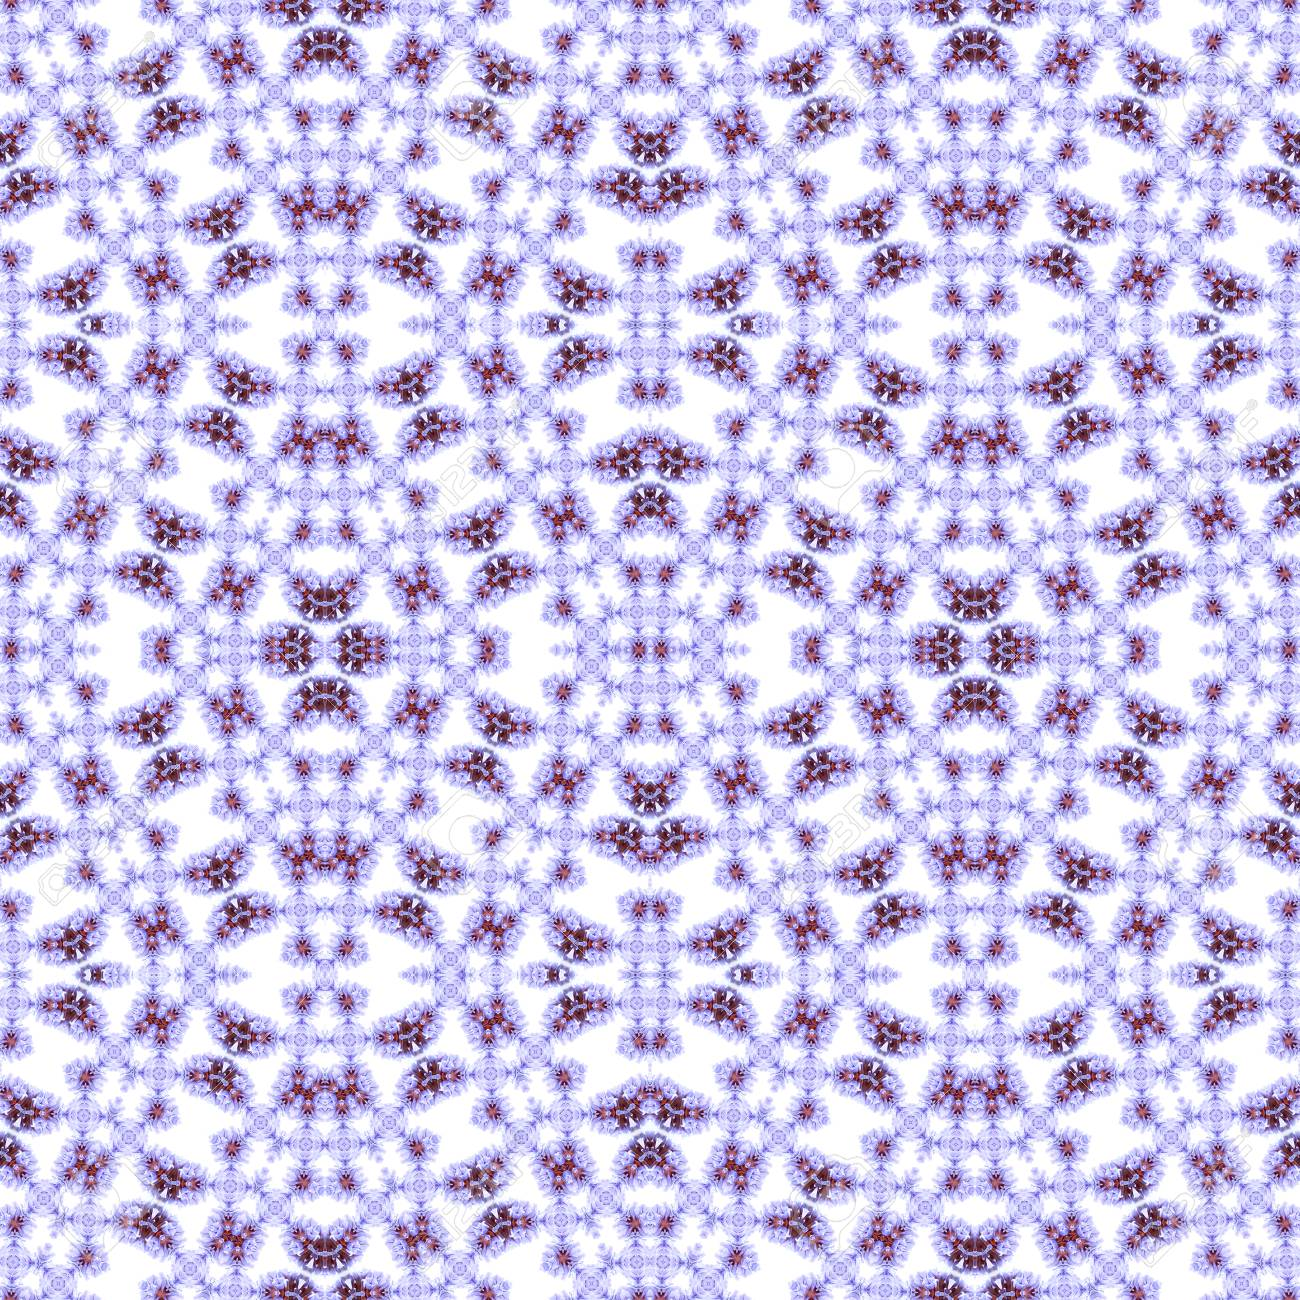 Abstract flowers seamless pattern background. Kaleidoscope from flowers. Hydraulic tile design. - 104075025